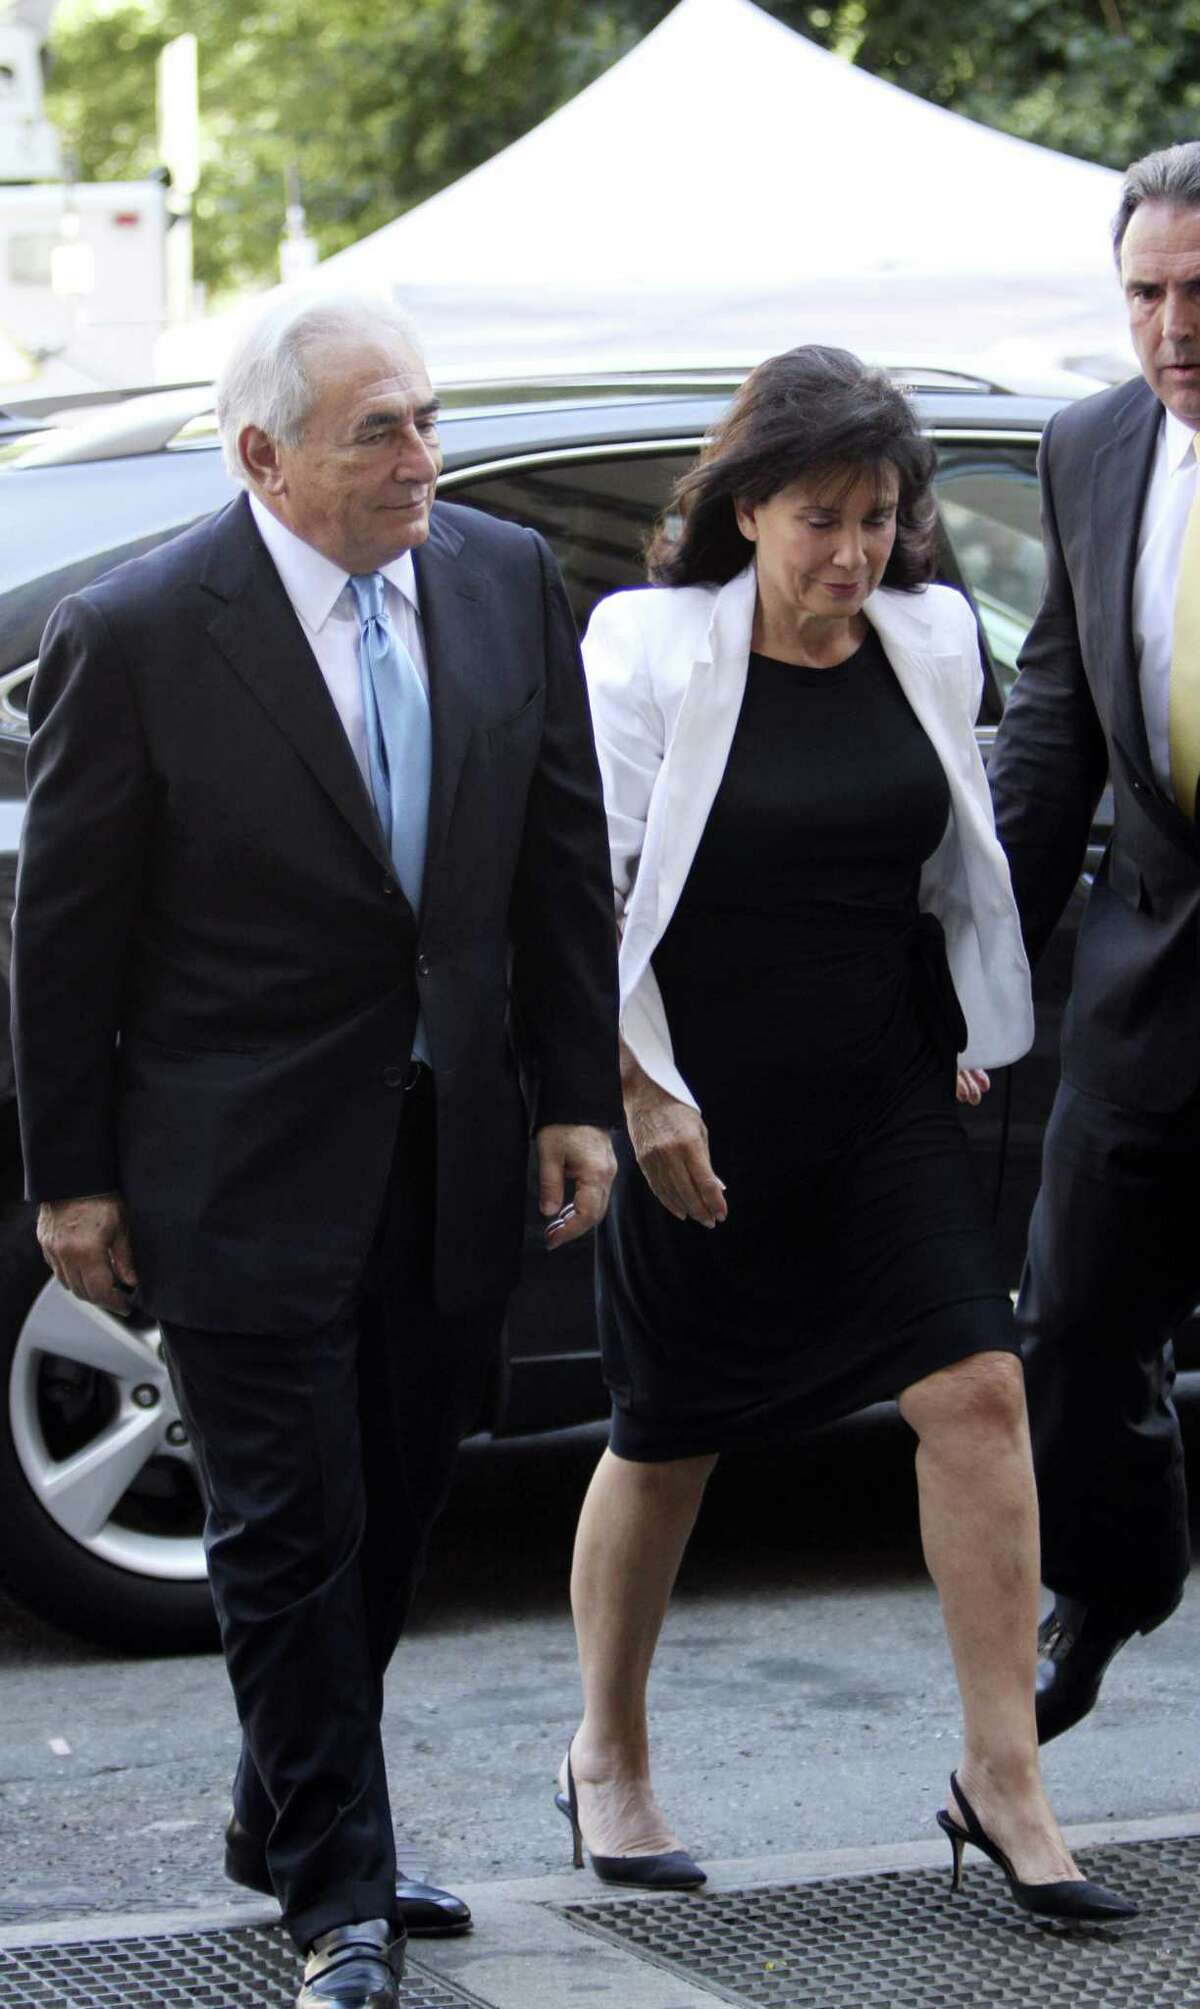 Dominque Strauss-Khan, left, arrives at New York Supreme court with his wife Anne Sinclair today in New York. Prosecutors have serious questions about the credibility of a hotel housekeeper who has accused Strauss-Kahn of sexual assault, and he is expected to have his strict bail conditions reduced Friday, according to people familiar with the case. (AP Photo/Mary Altaffer)